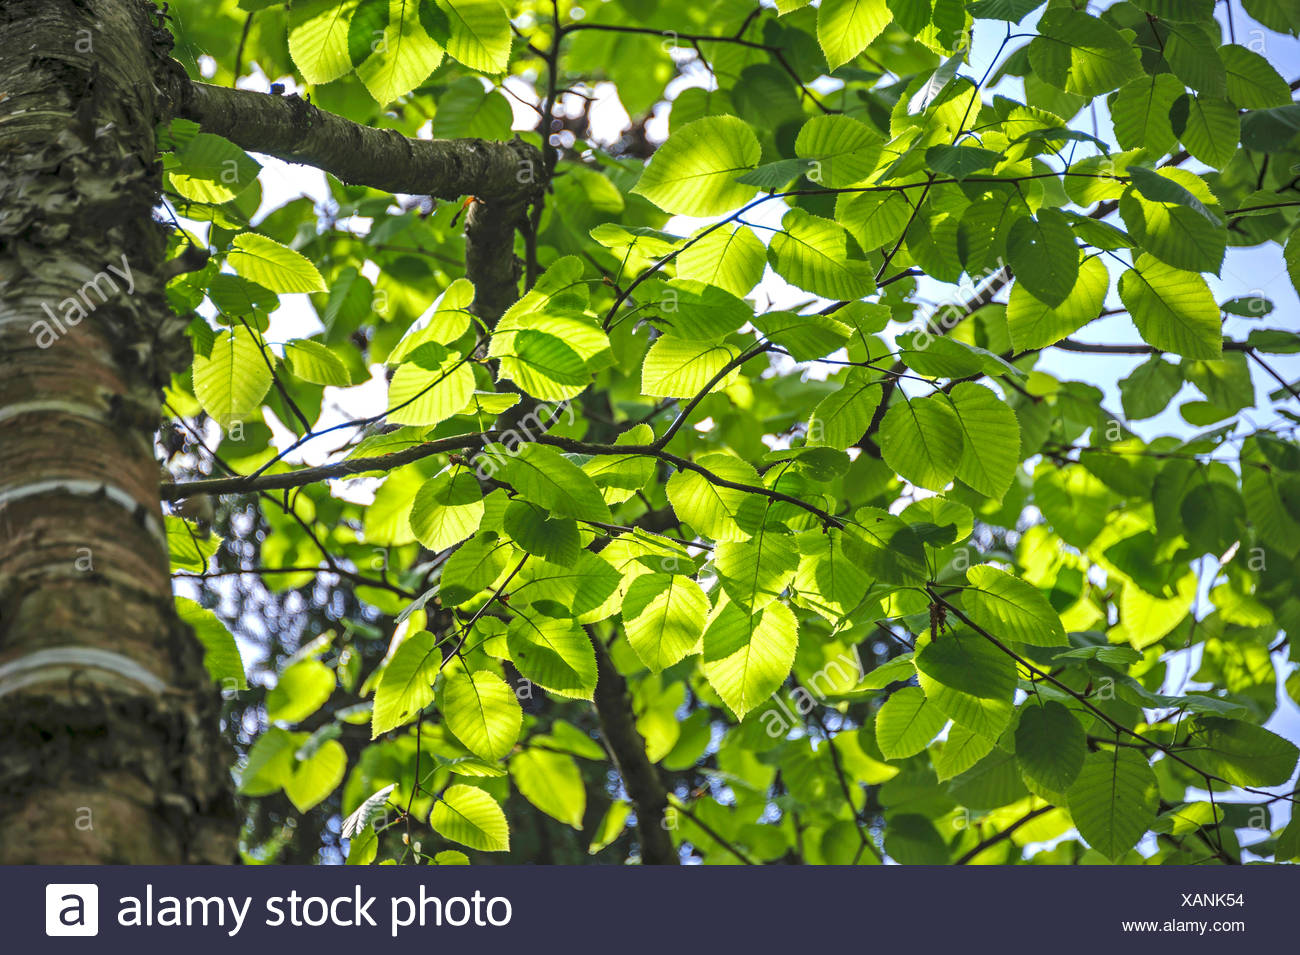 Monarch birch (Betula maximowicziana), branches in backlight, Poland, Schloßpark Prillwitz - Stock Image